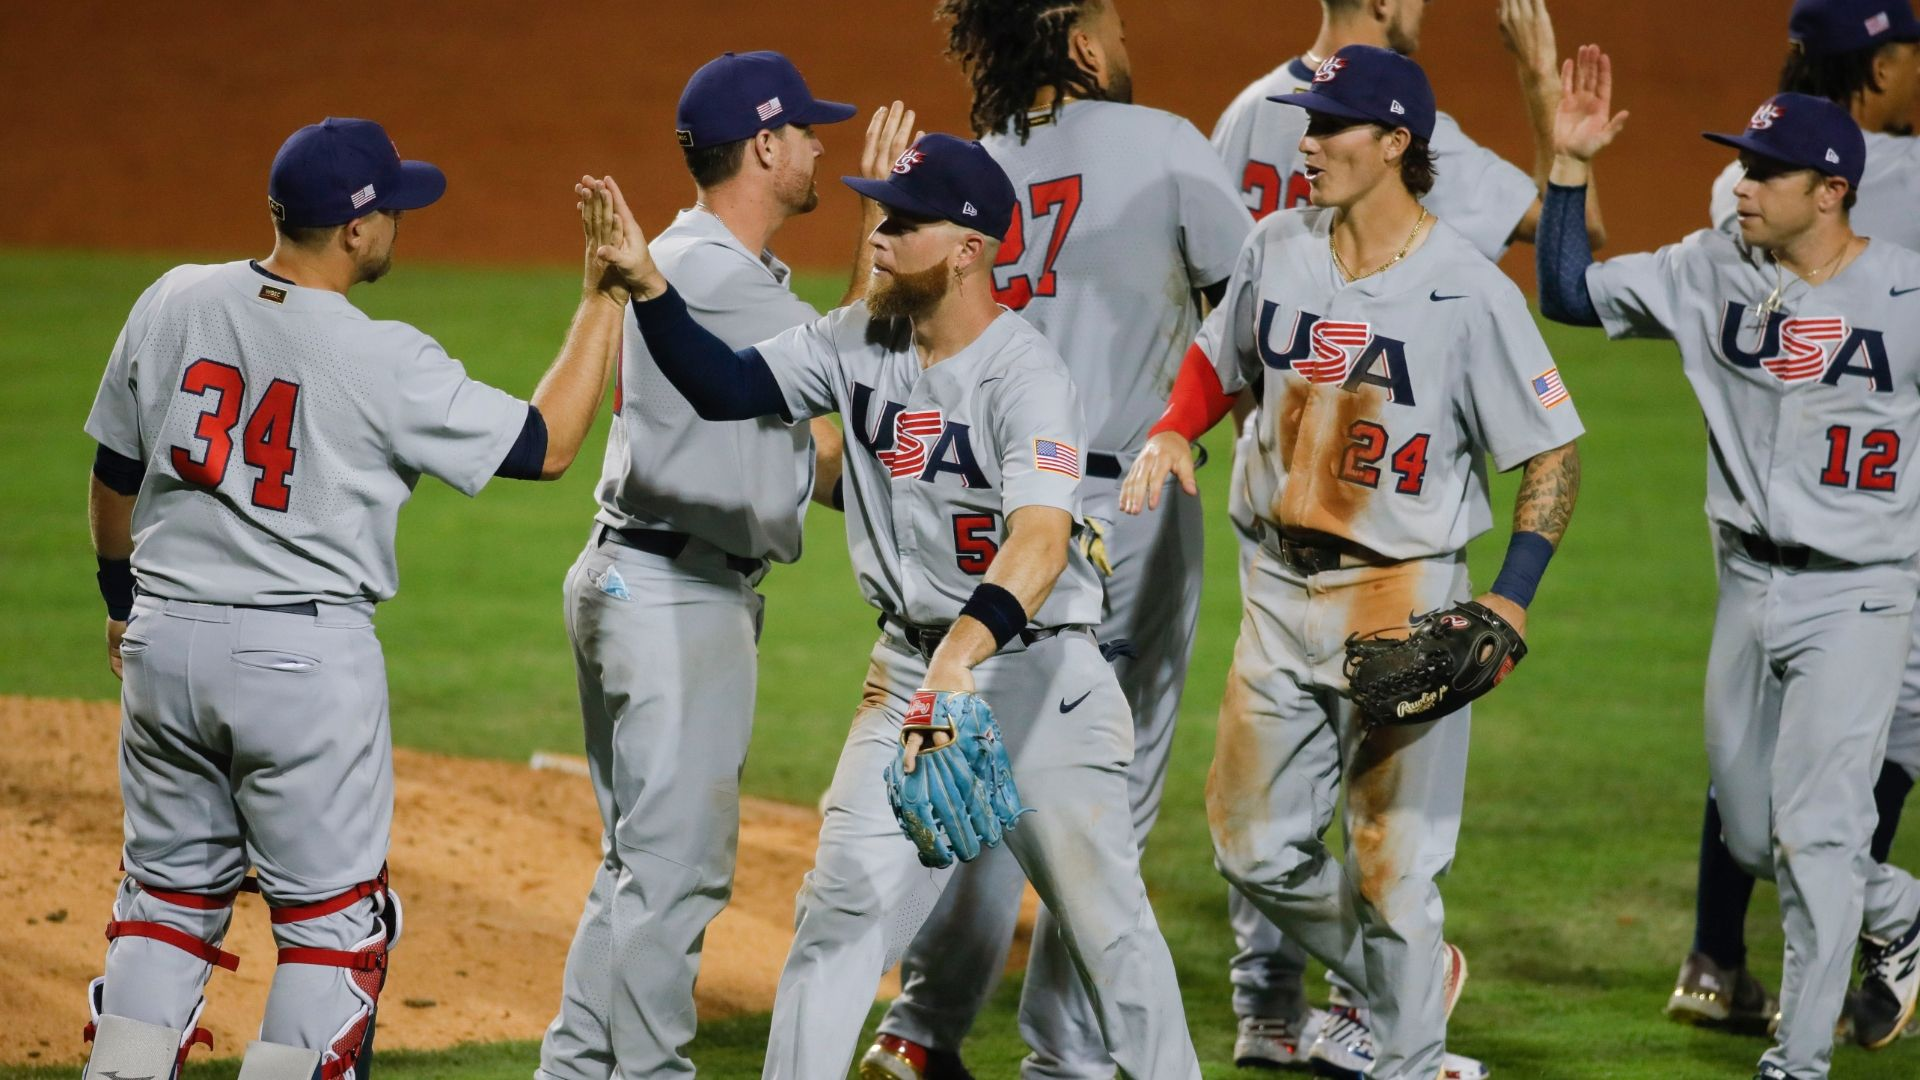 The United States easily beat Nicaragua in pre-Olympic baseball